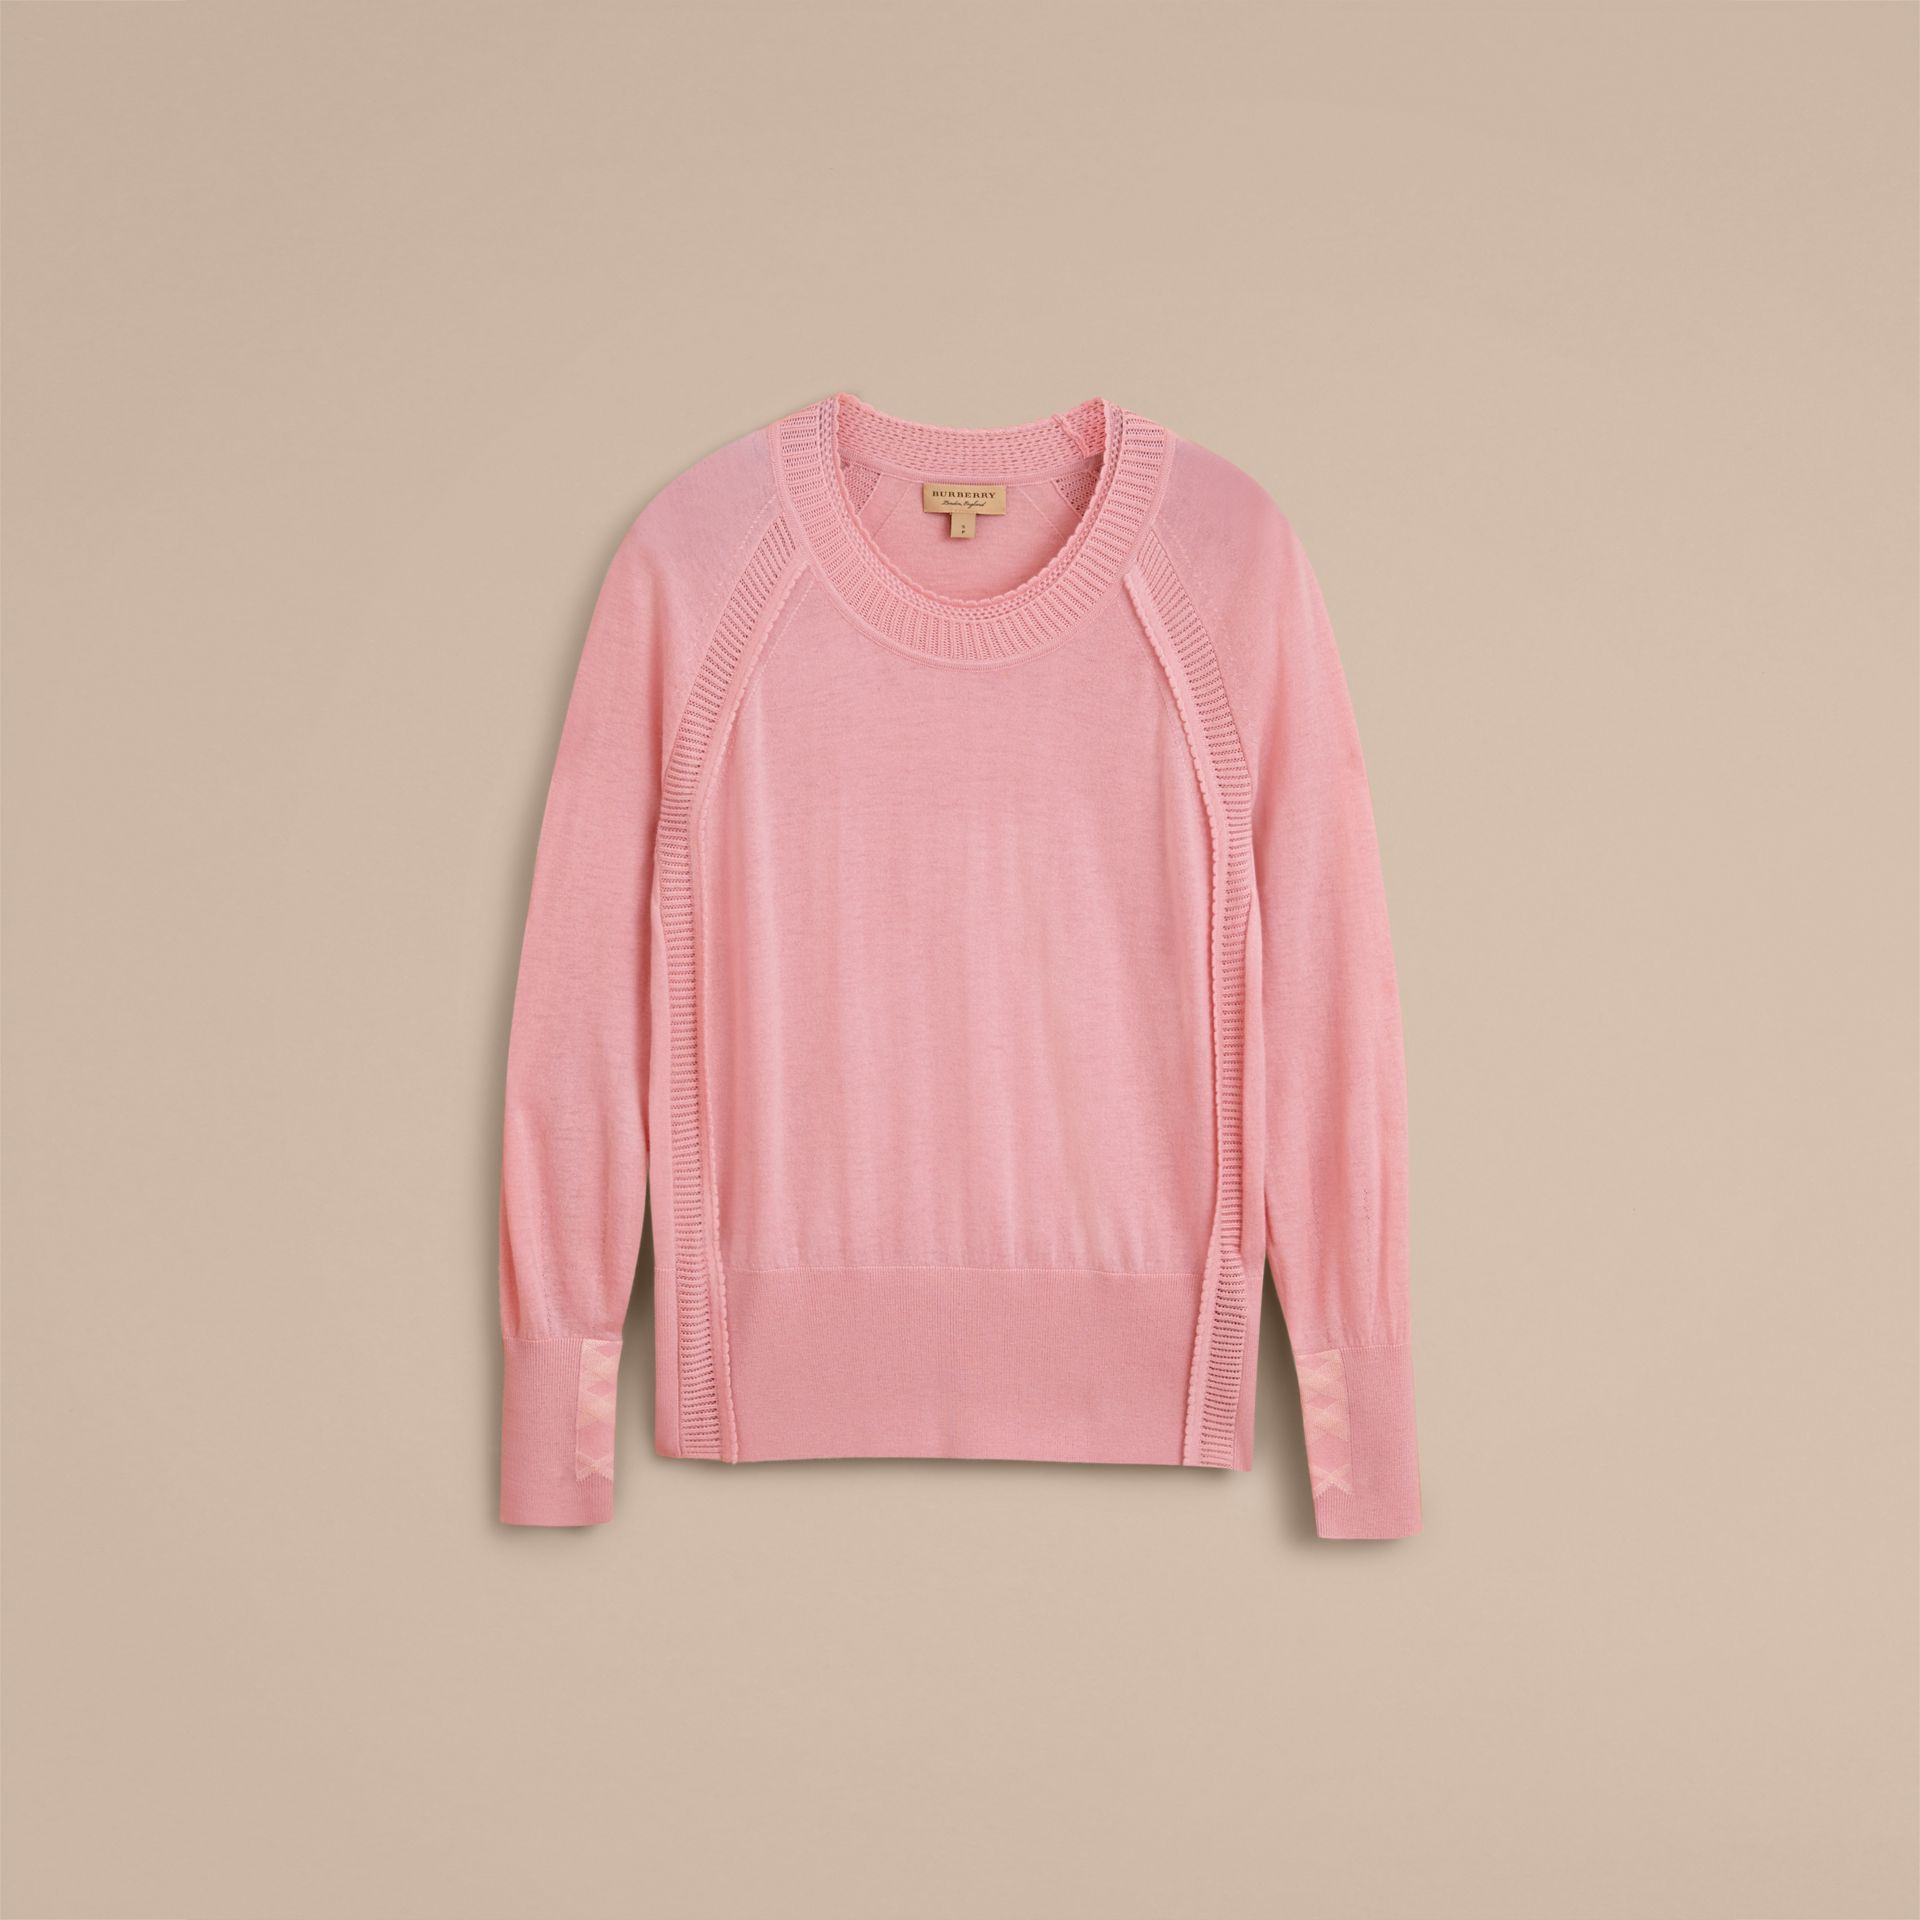 Open-knit Detail Cashmere Crew Neck Sweater in Apricot Pink - Women | Burberry - gallery image 4